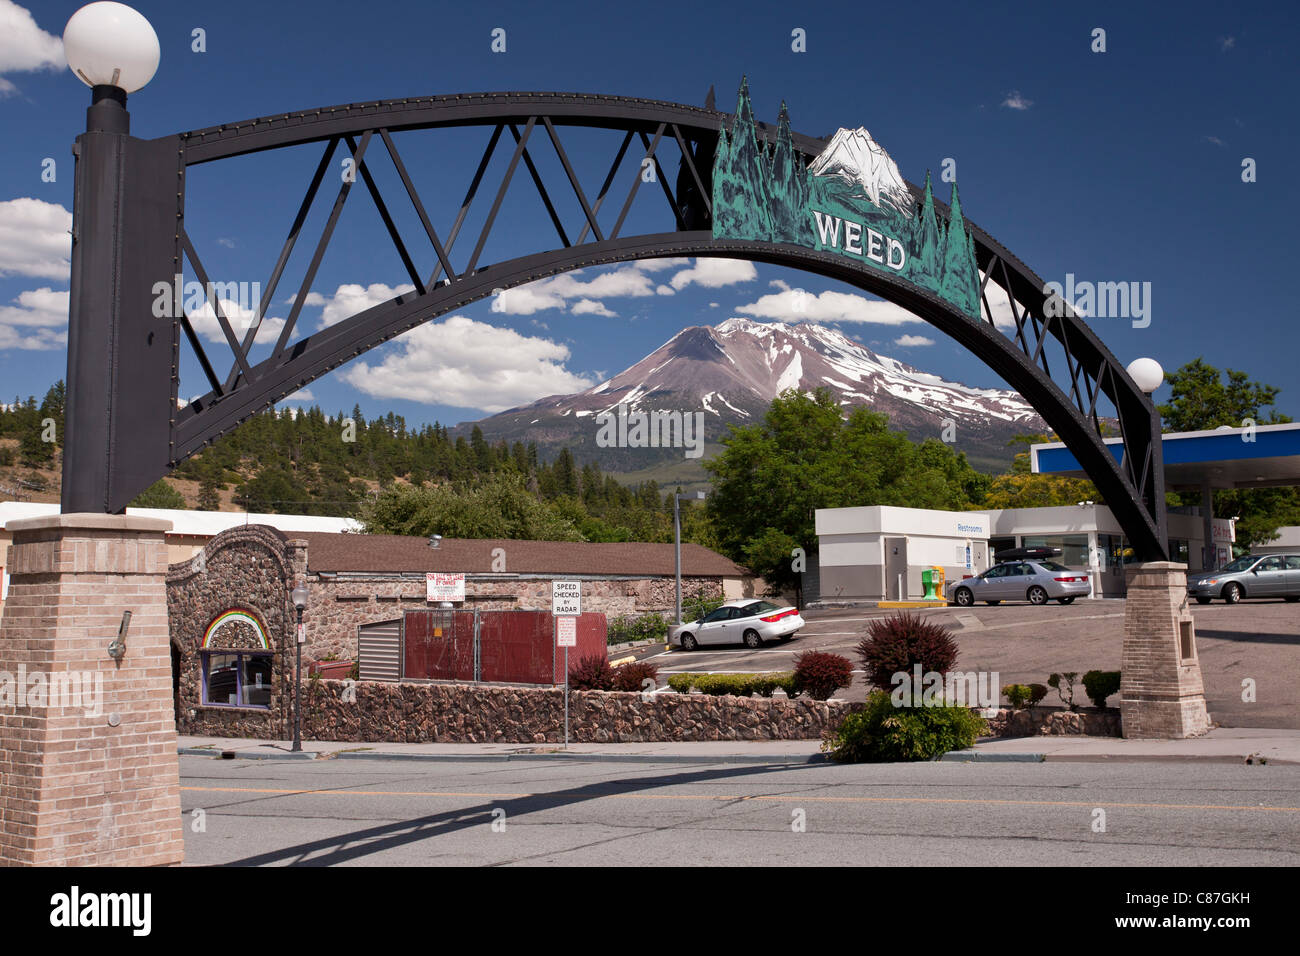 The town of Weed, with its understated entrance arch, nr. Mount Shasta, north California, USA - Stock Image